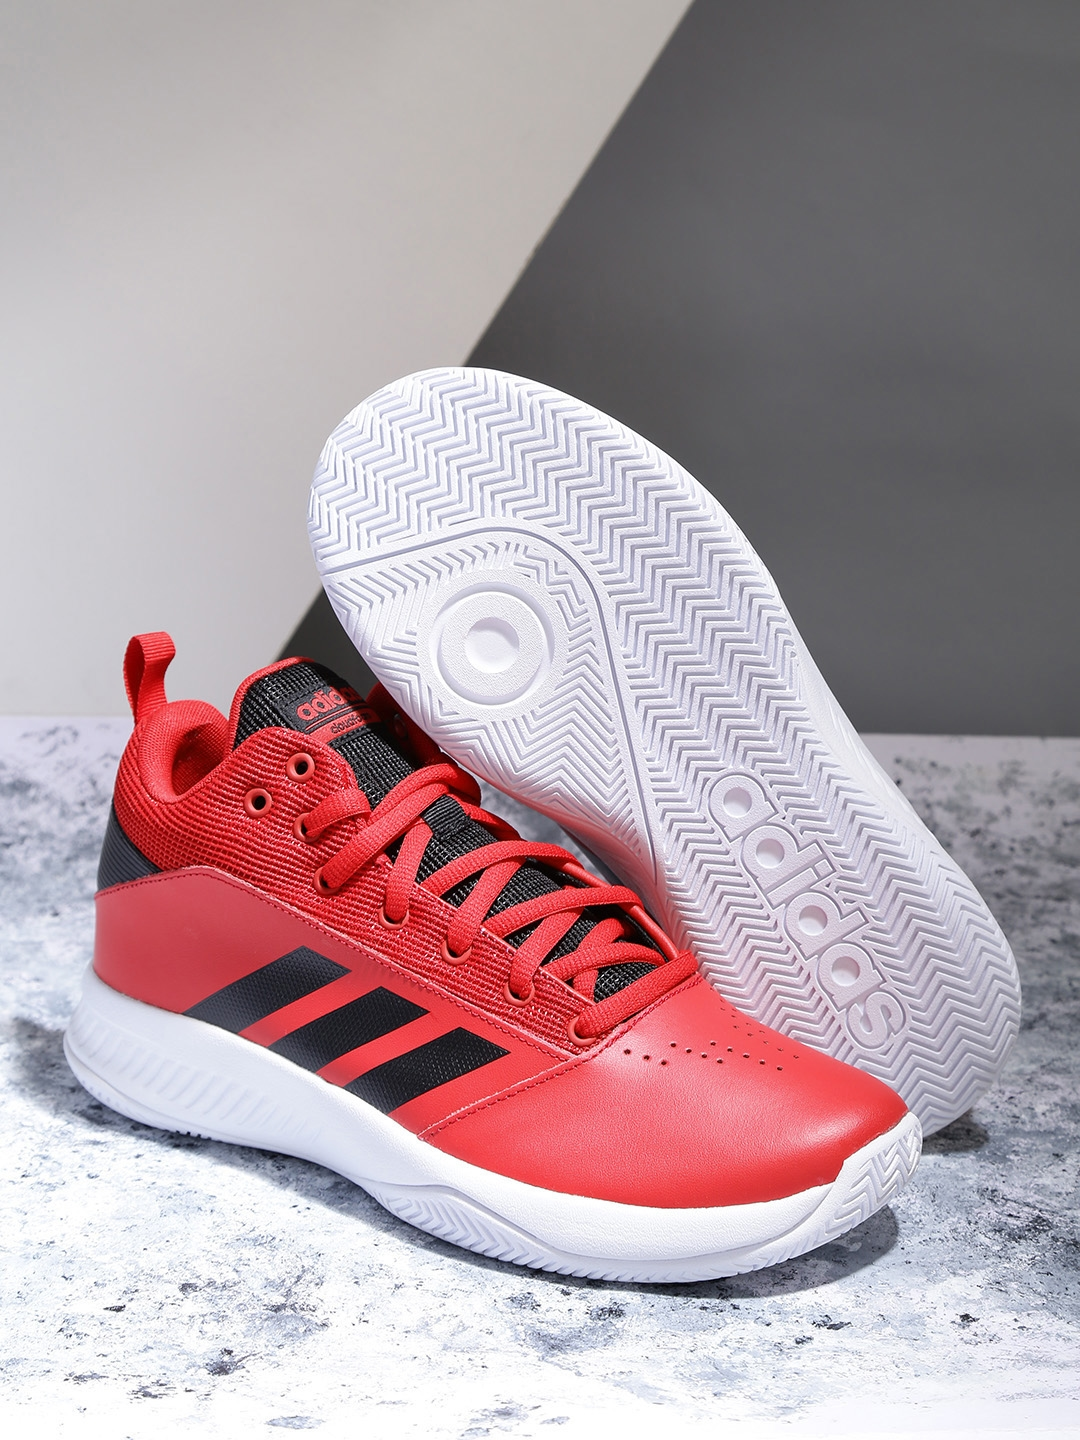 separation shoes 20813 43f79 ADIDAS Men Red CF ILATION 2.0 Basketball Shoes